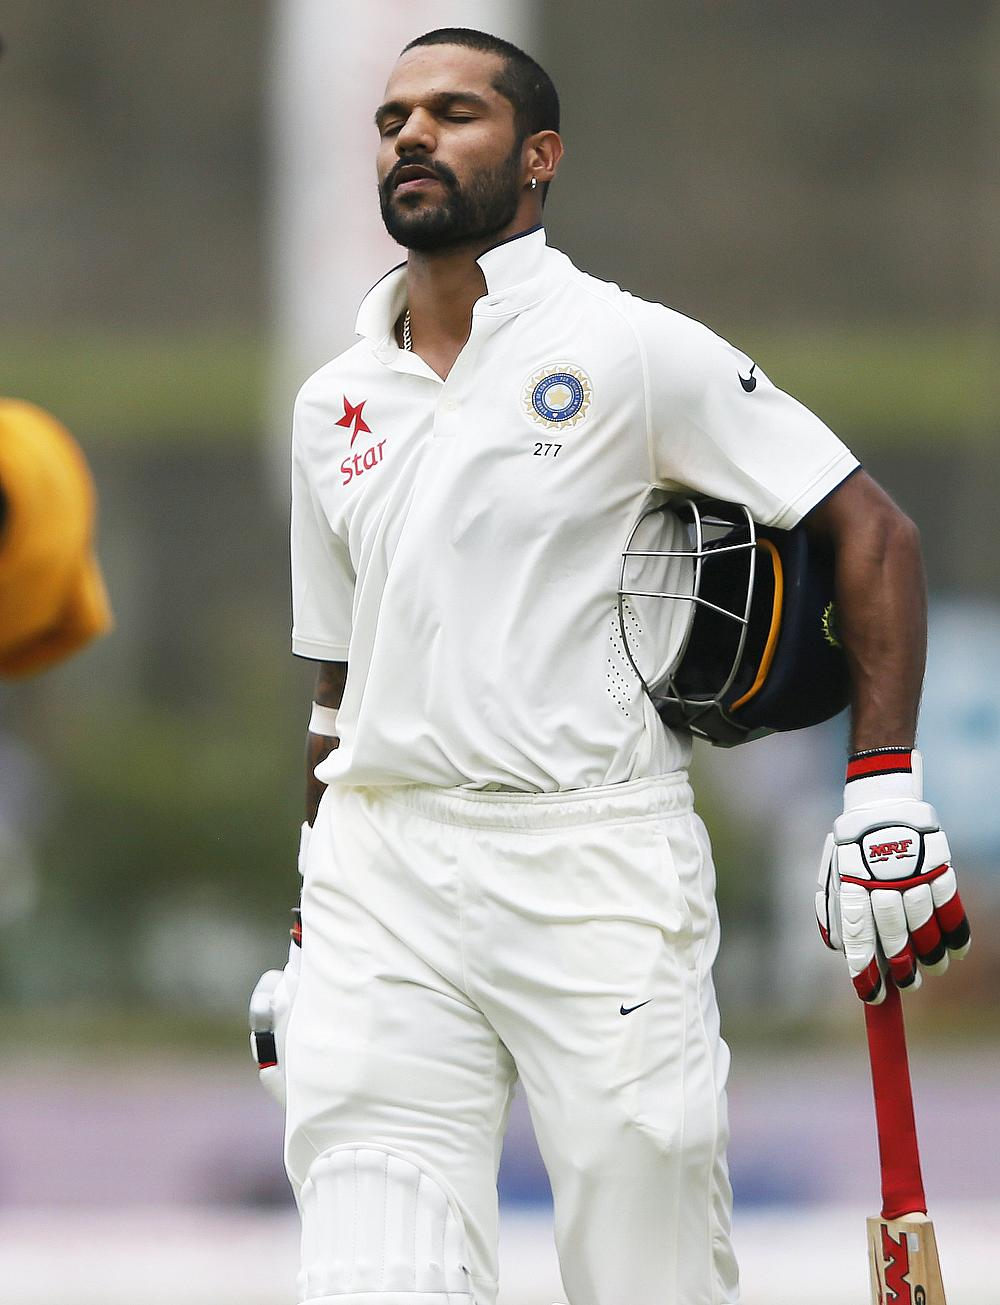 shikhar dhawan - latest cricket news, match reports & comment